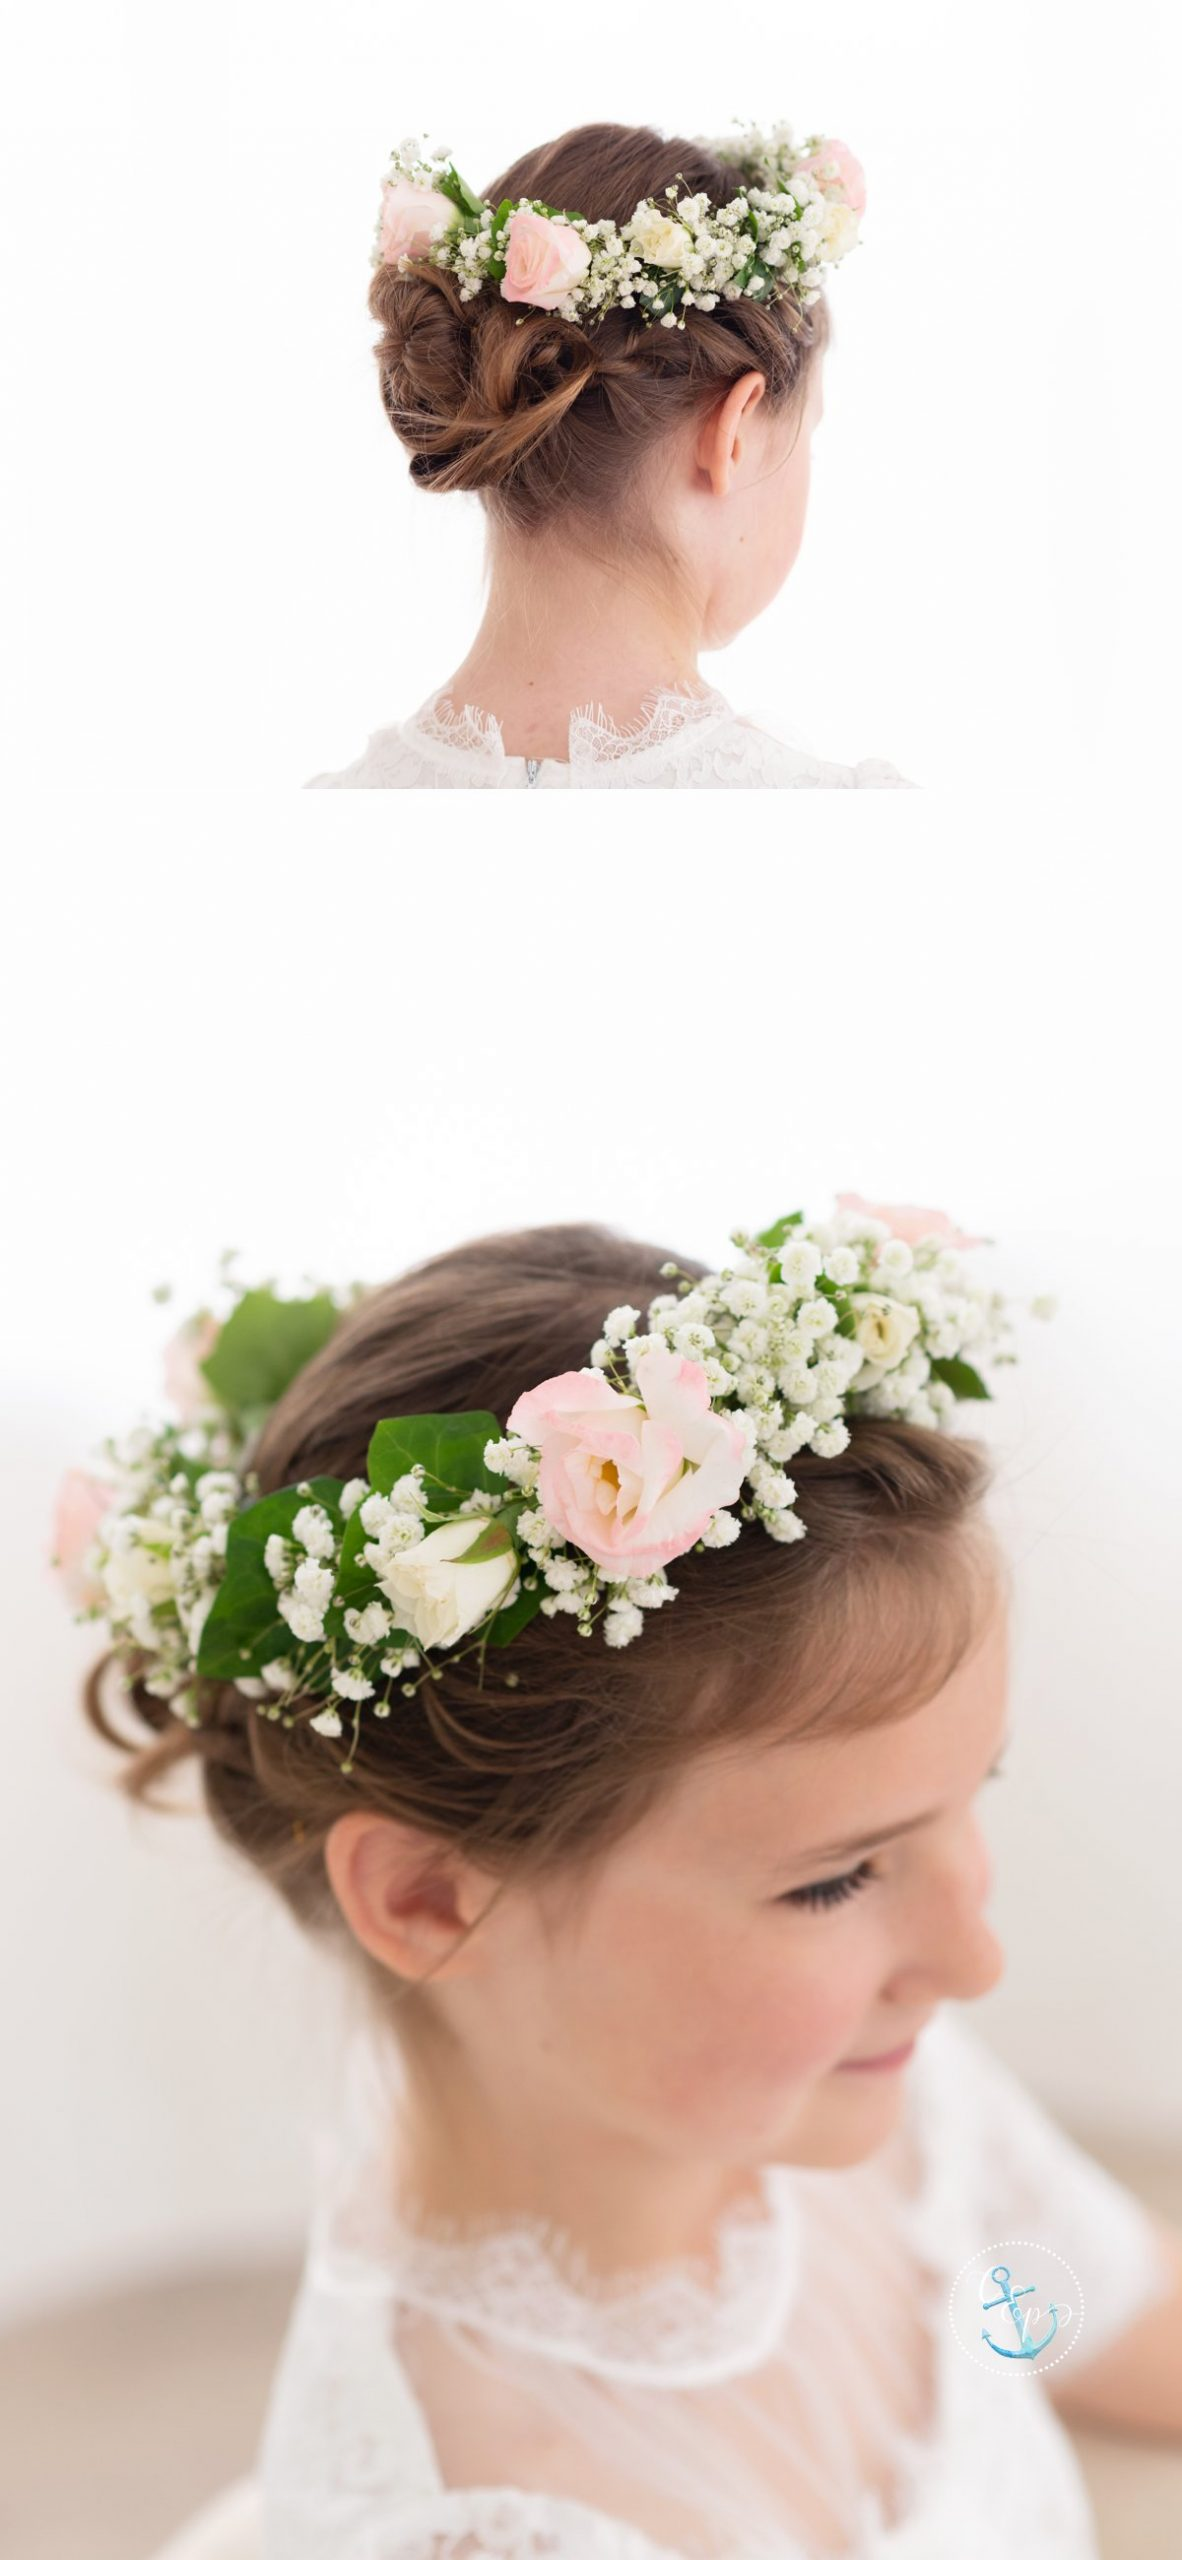 Girl's flower crown for First Communion, Copyright Cristina Elisa Photography LLC